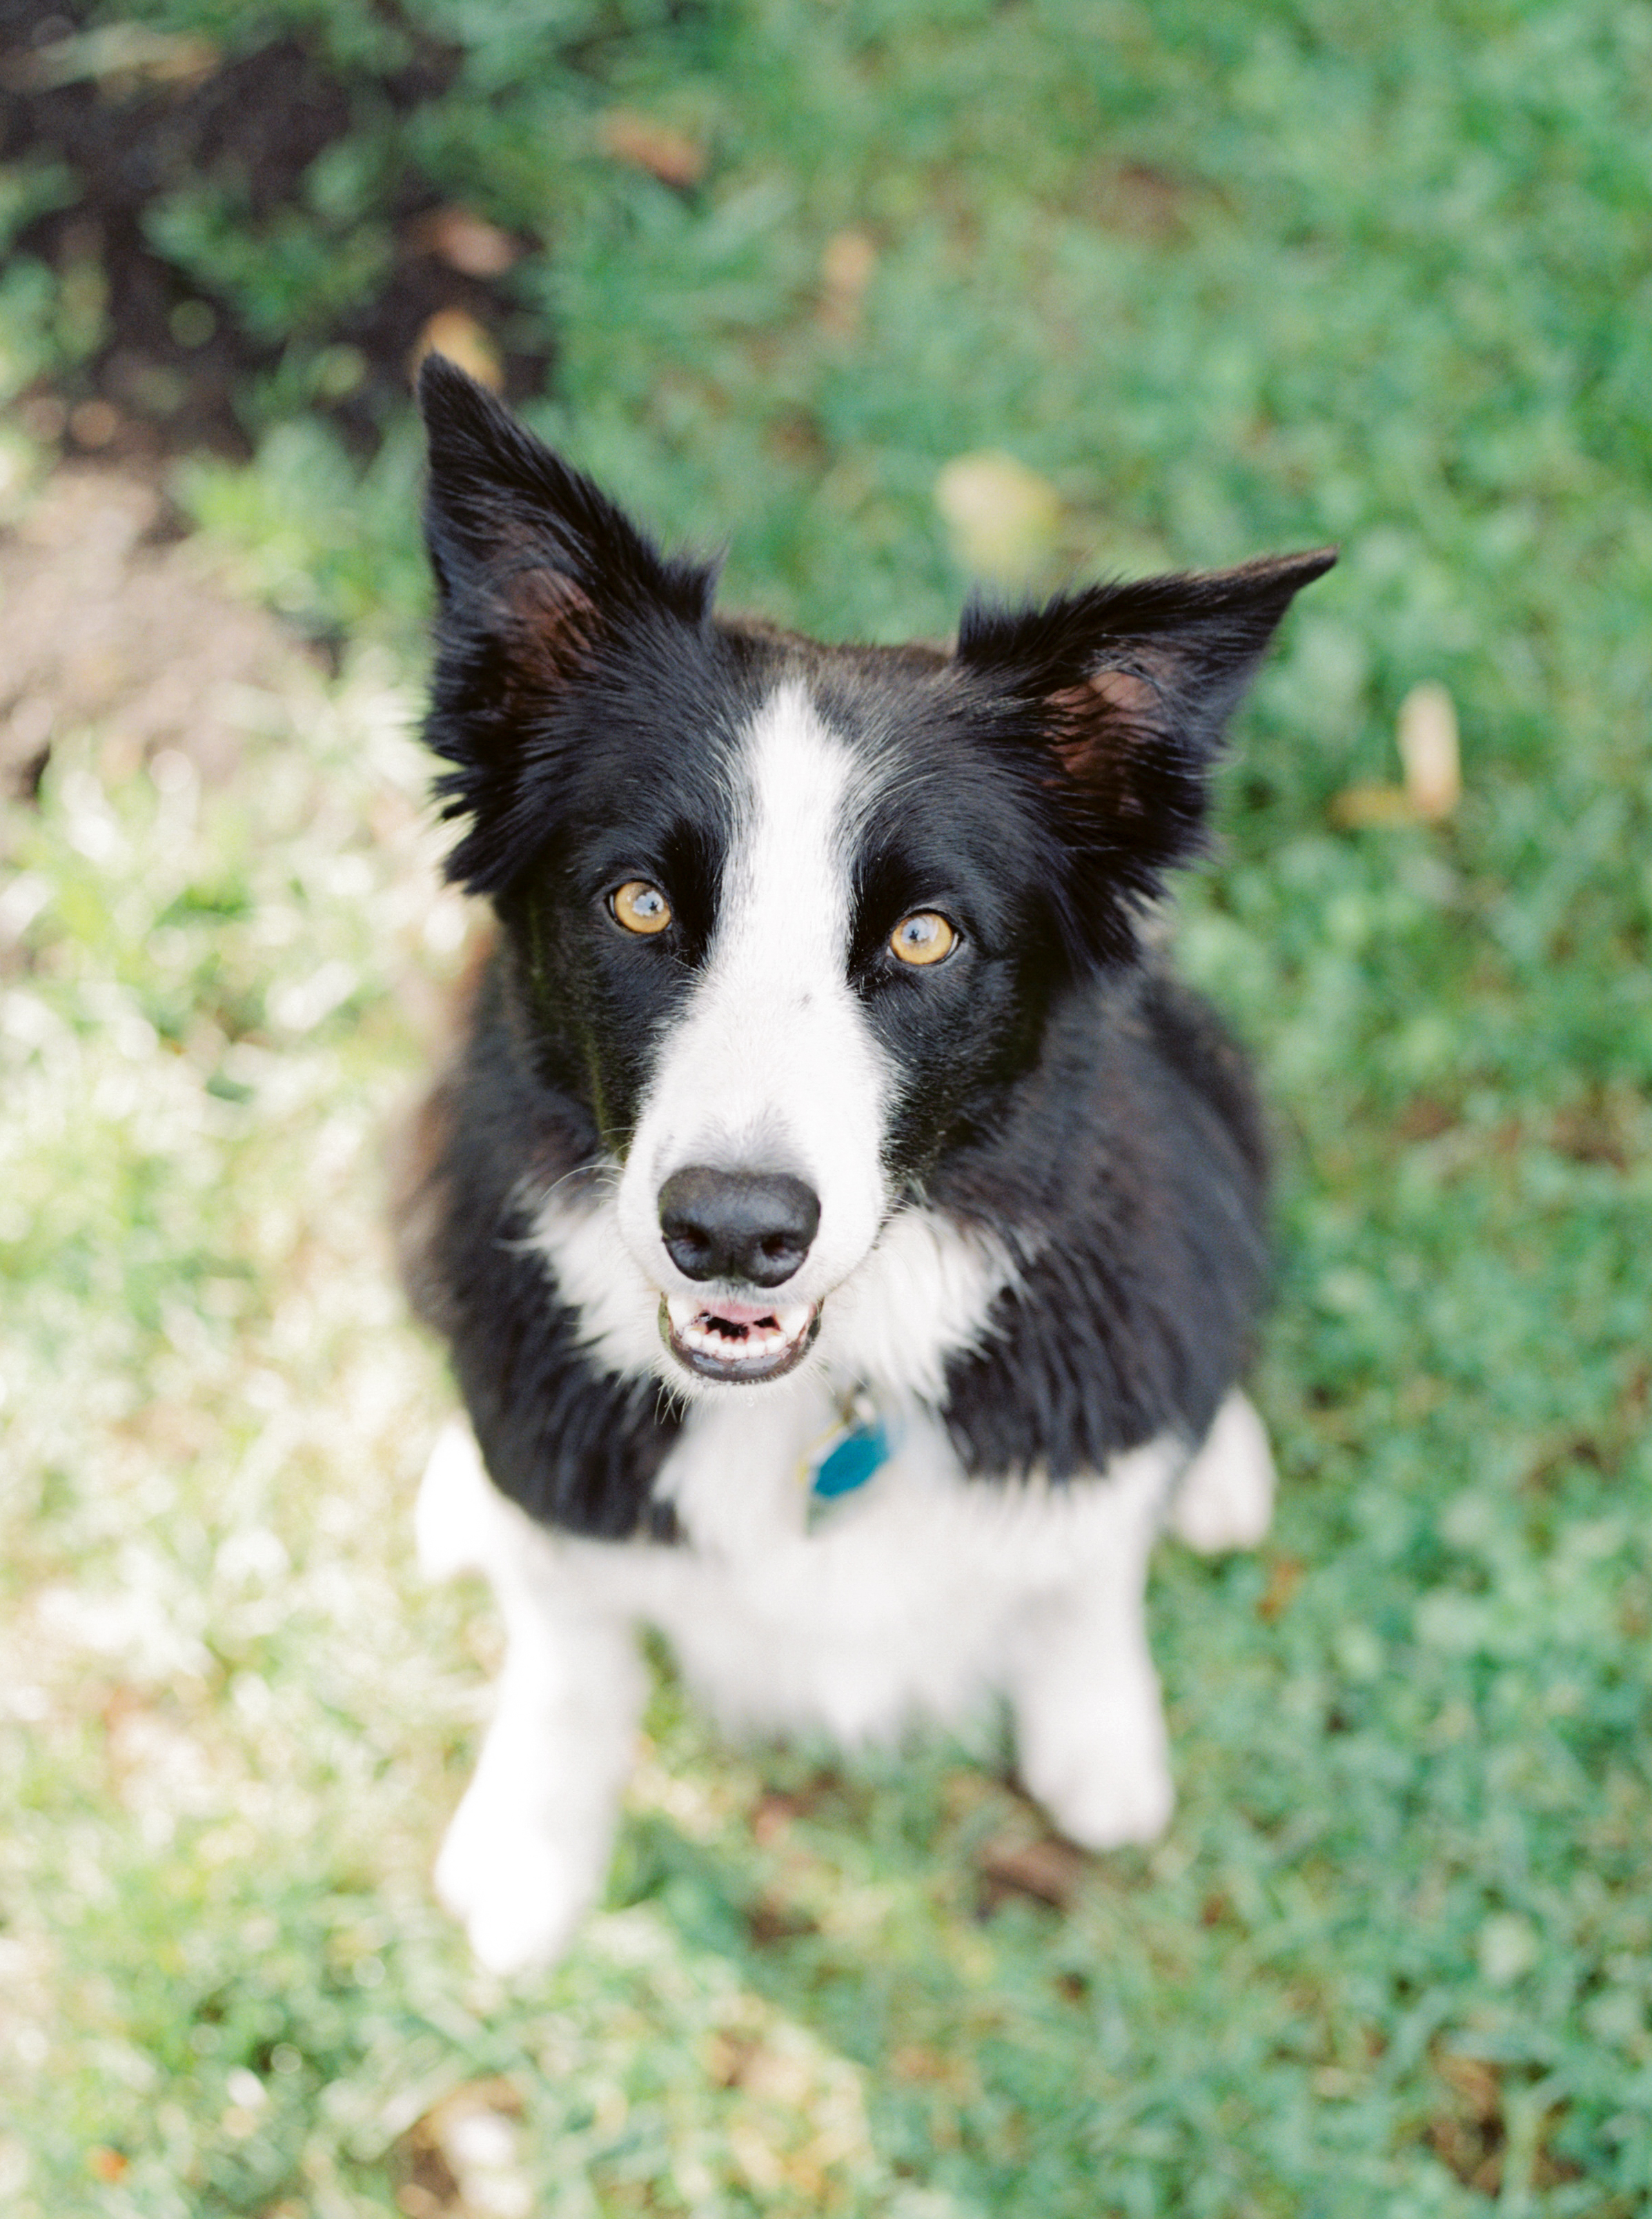 Happy border collie puppy dog with perky ears